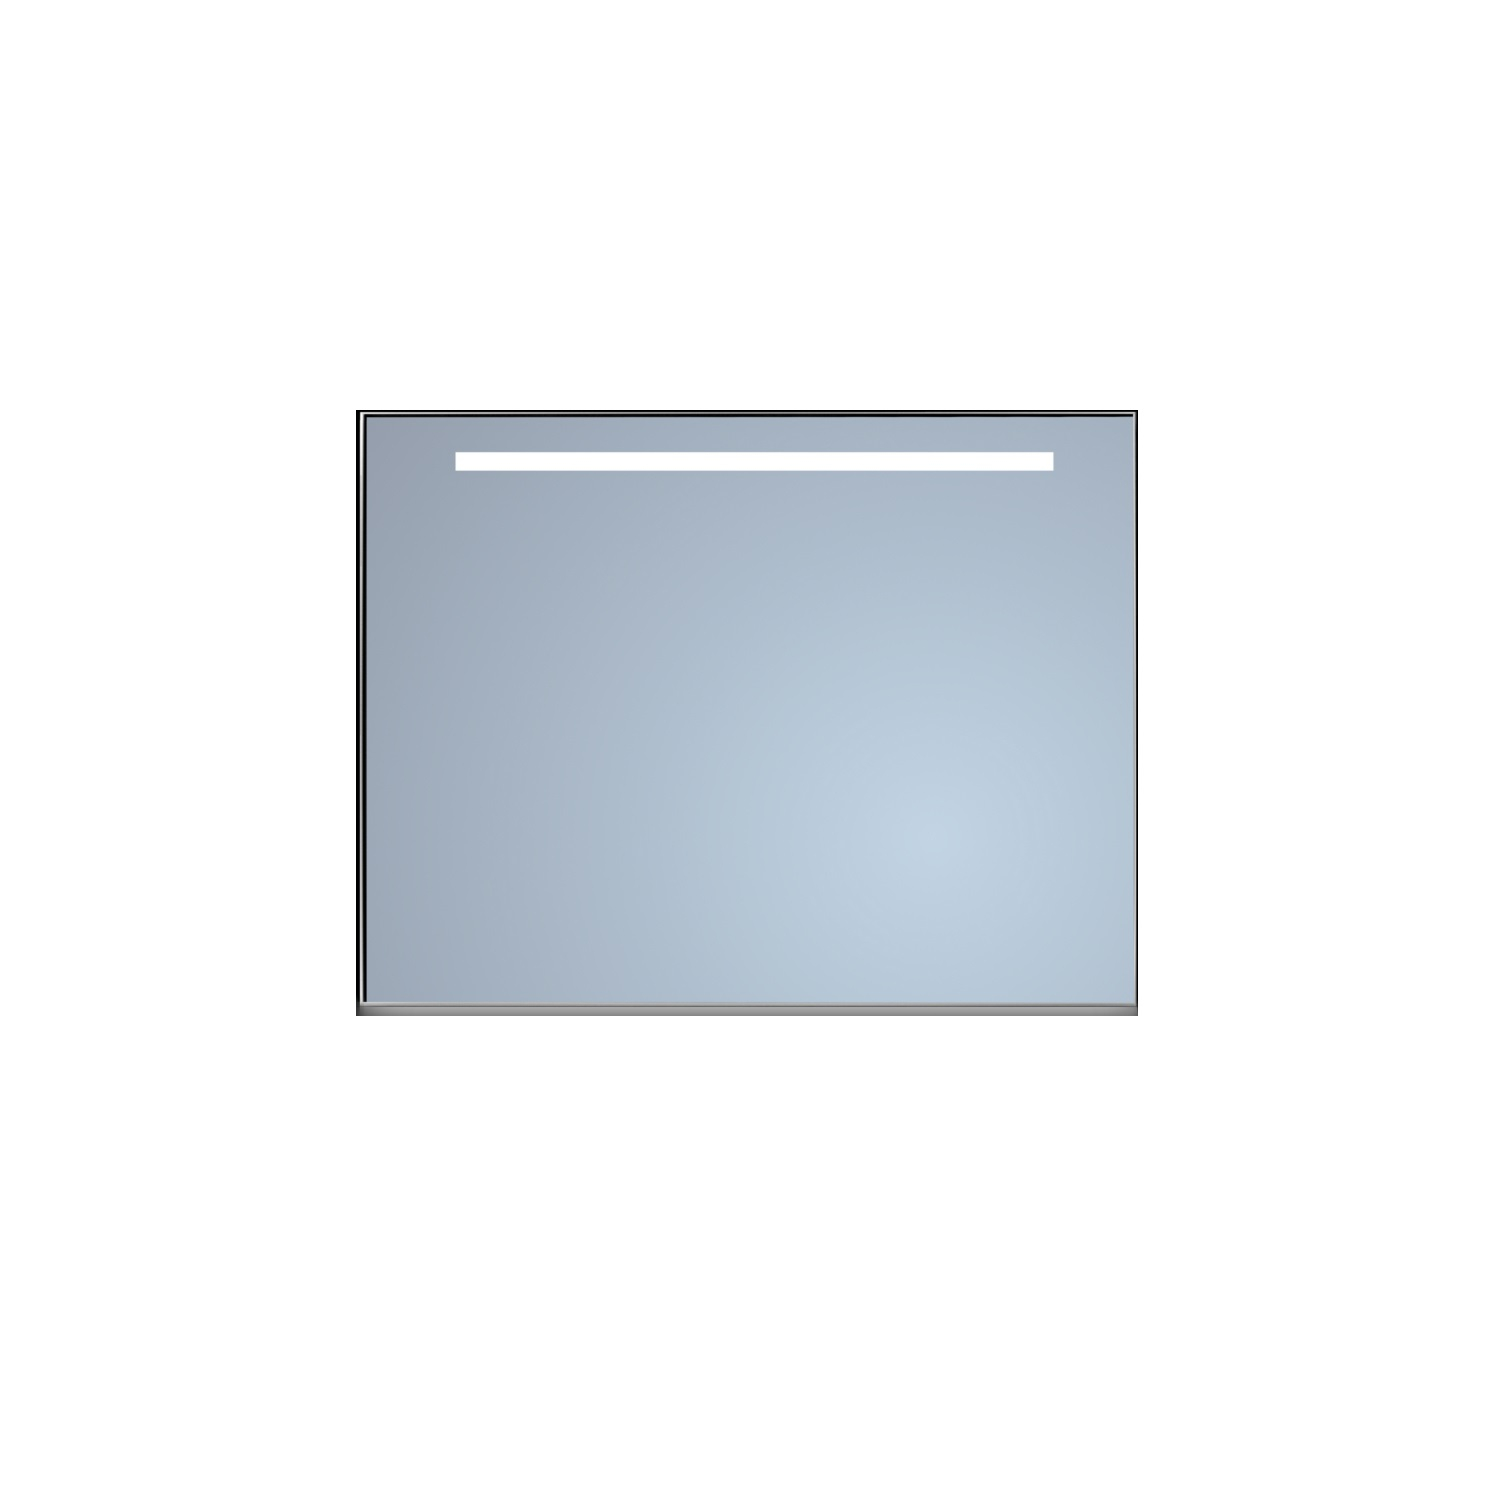 Badkamerspiegel Sanicare Q-Mirrors Ambiance en 'Cold White' LED-verlichting 70x75x3,5 Alu Omlijsting